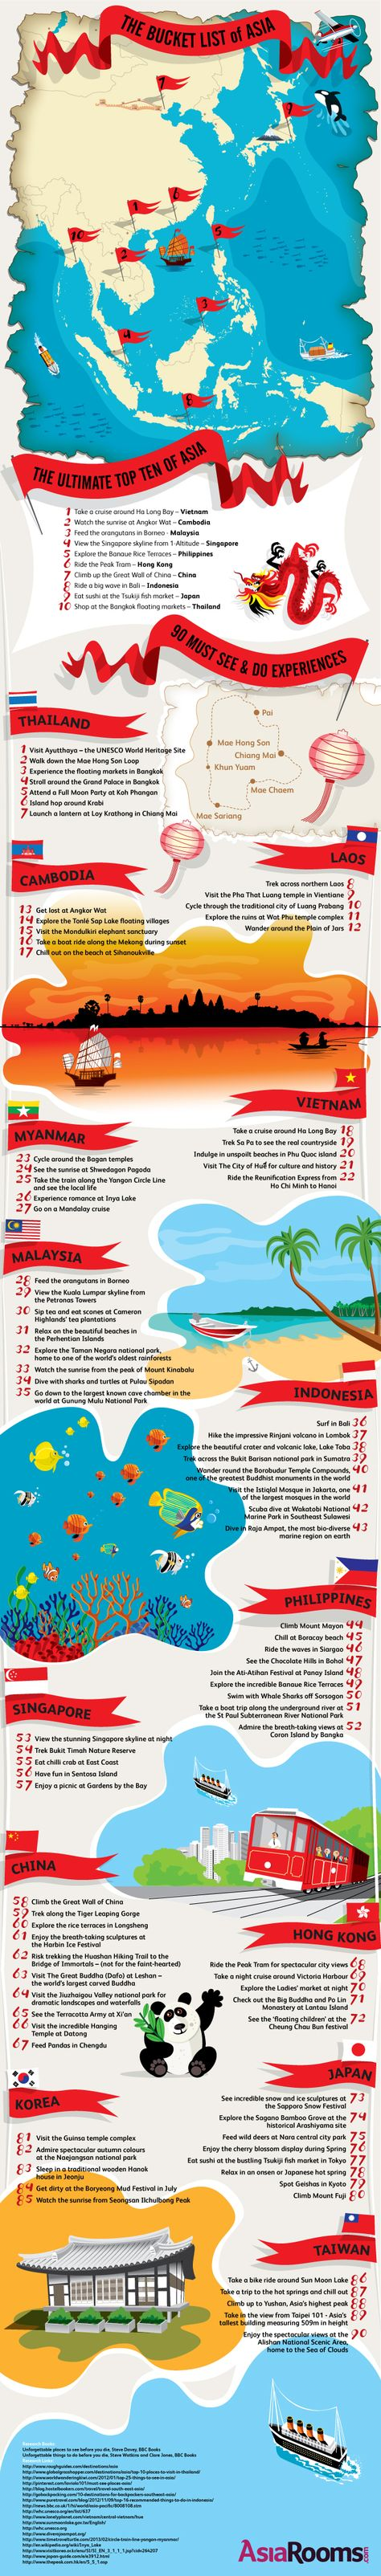 The Bucket List of Asia features 90 must see and do experiences for travellers visiting the popular destination for backpackers and gap year traveller